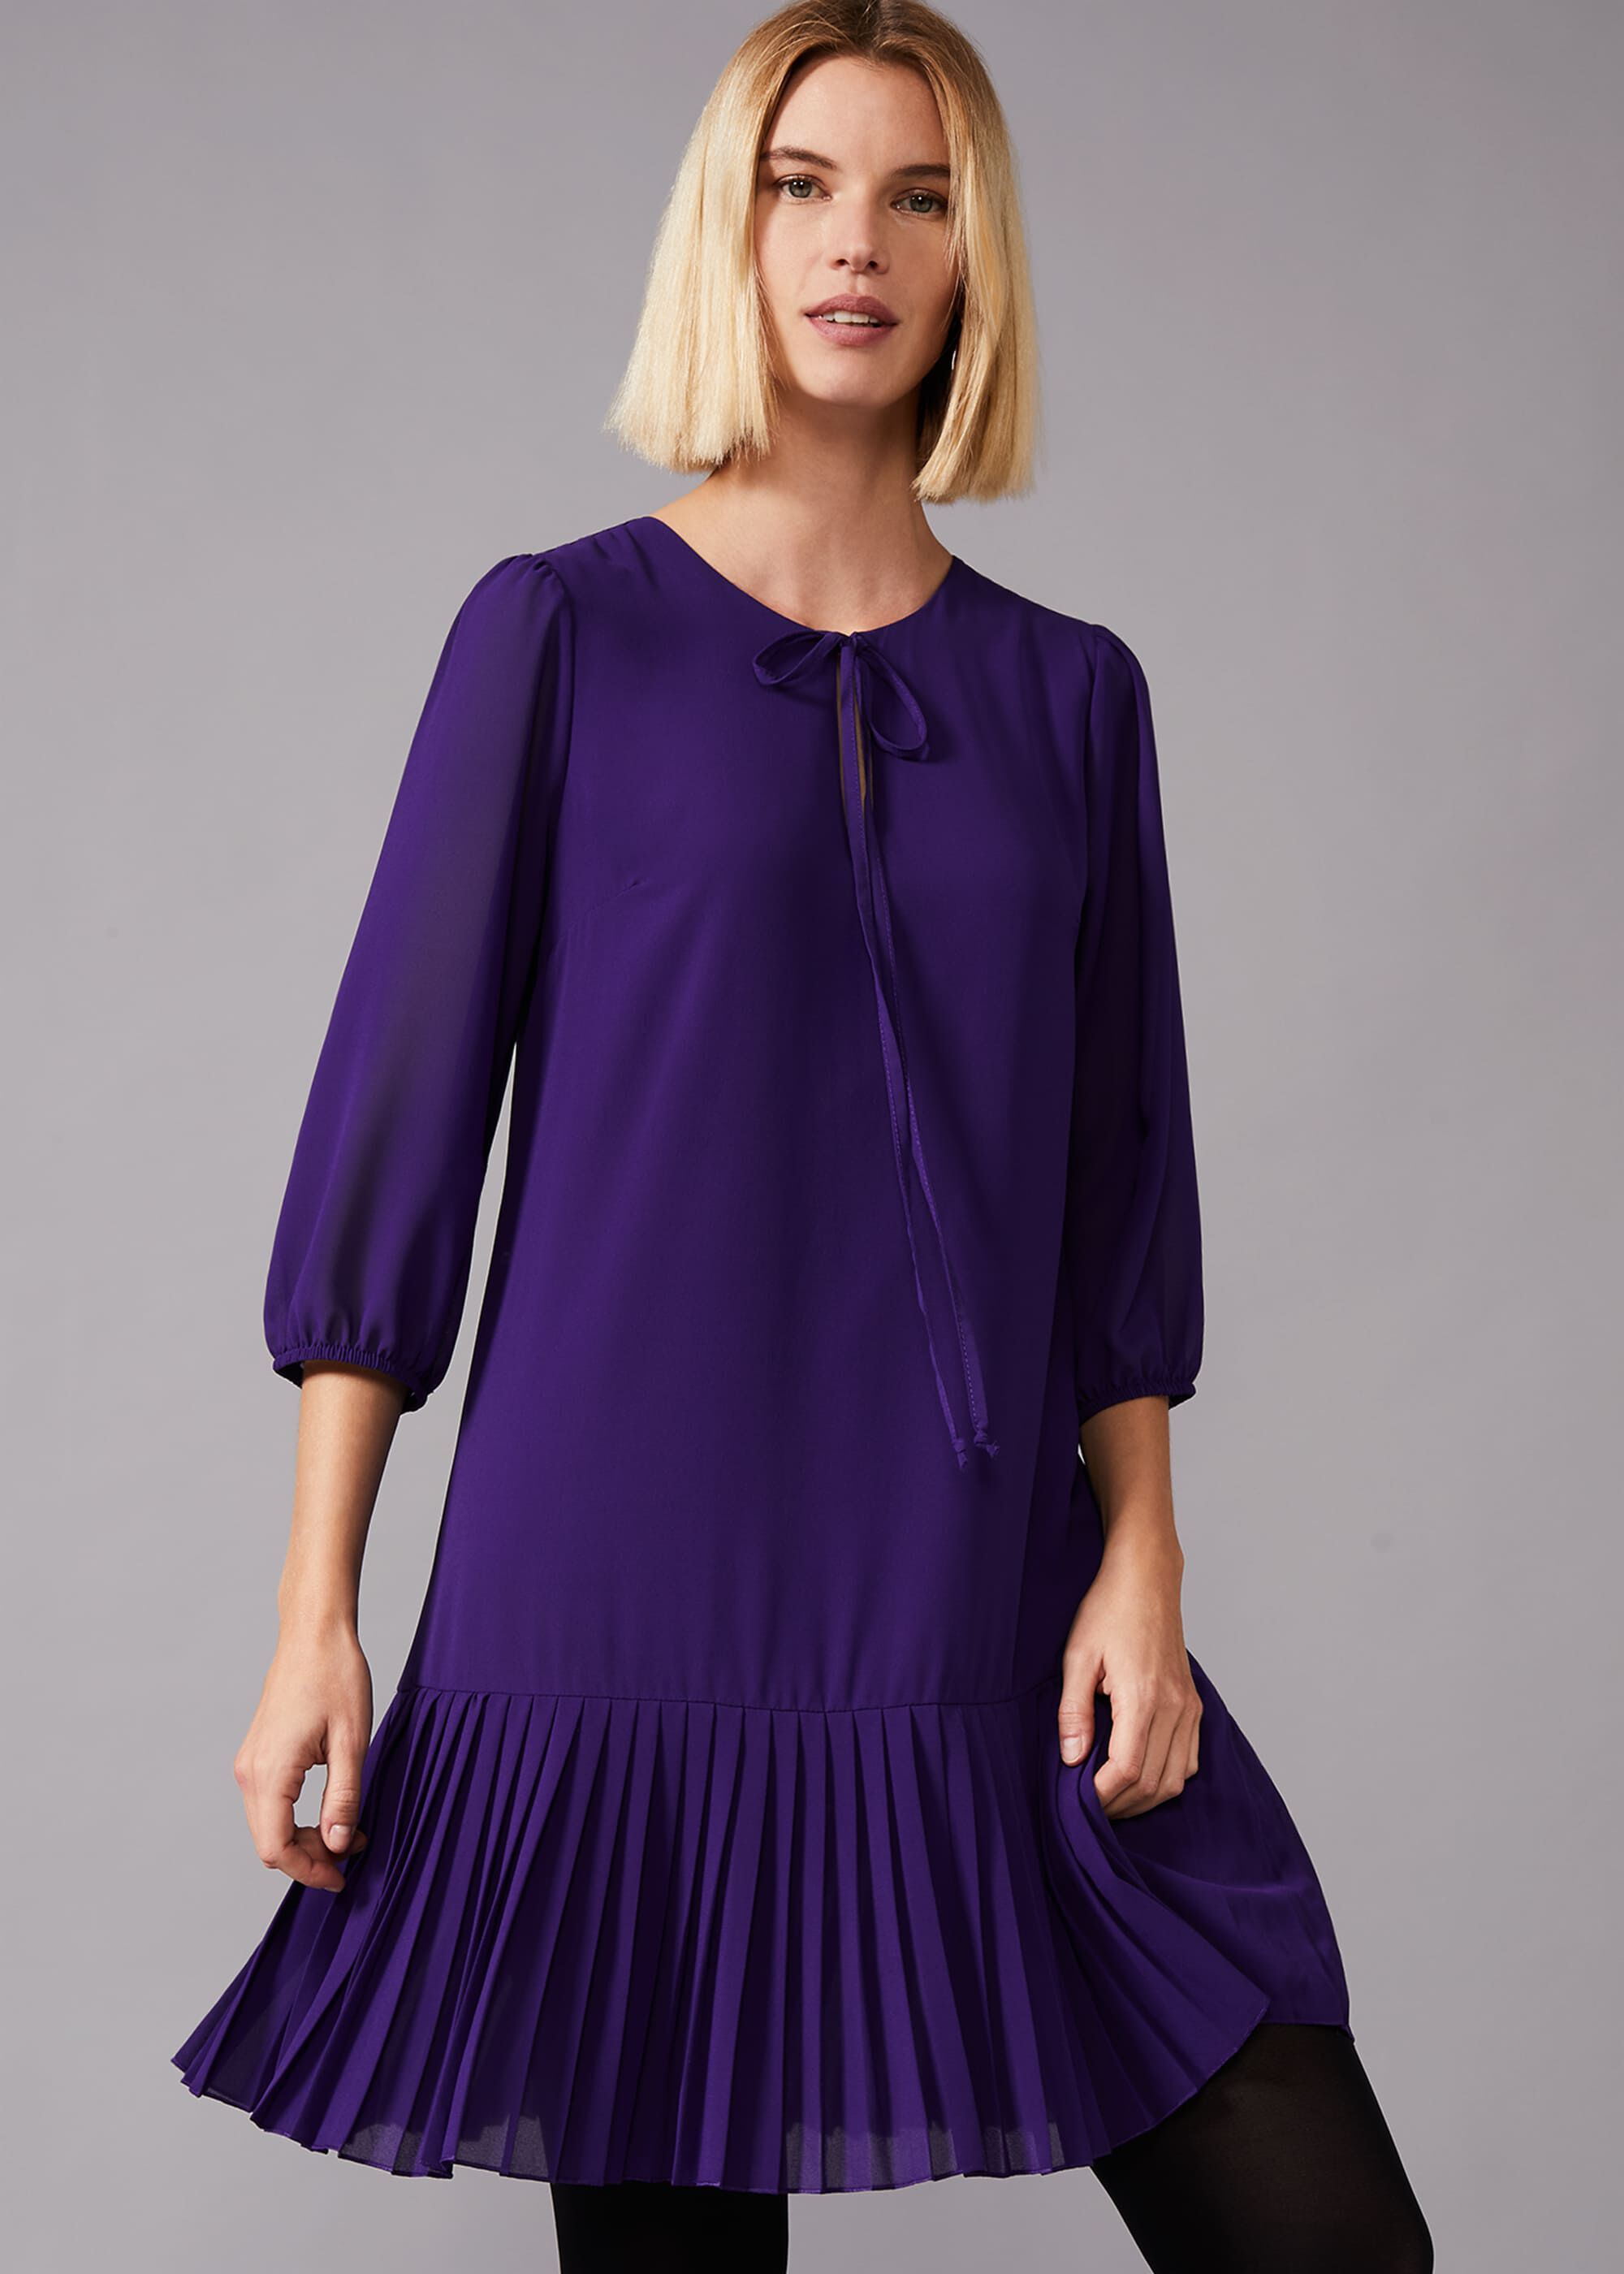 Old Fashioned Dresses | Old Dress Styles Phase Eight Maisie Pleat Dress Purple Shift £89.00 AT vintagedancer.com